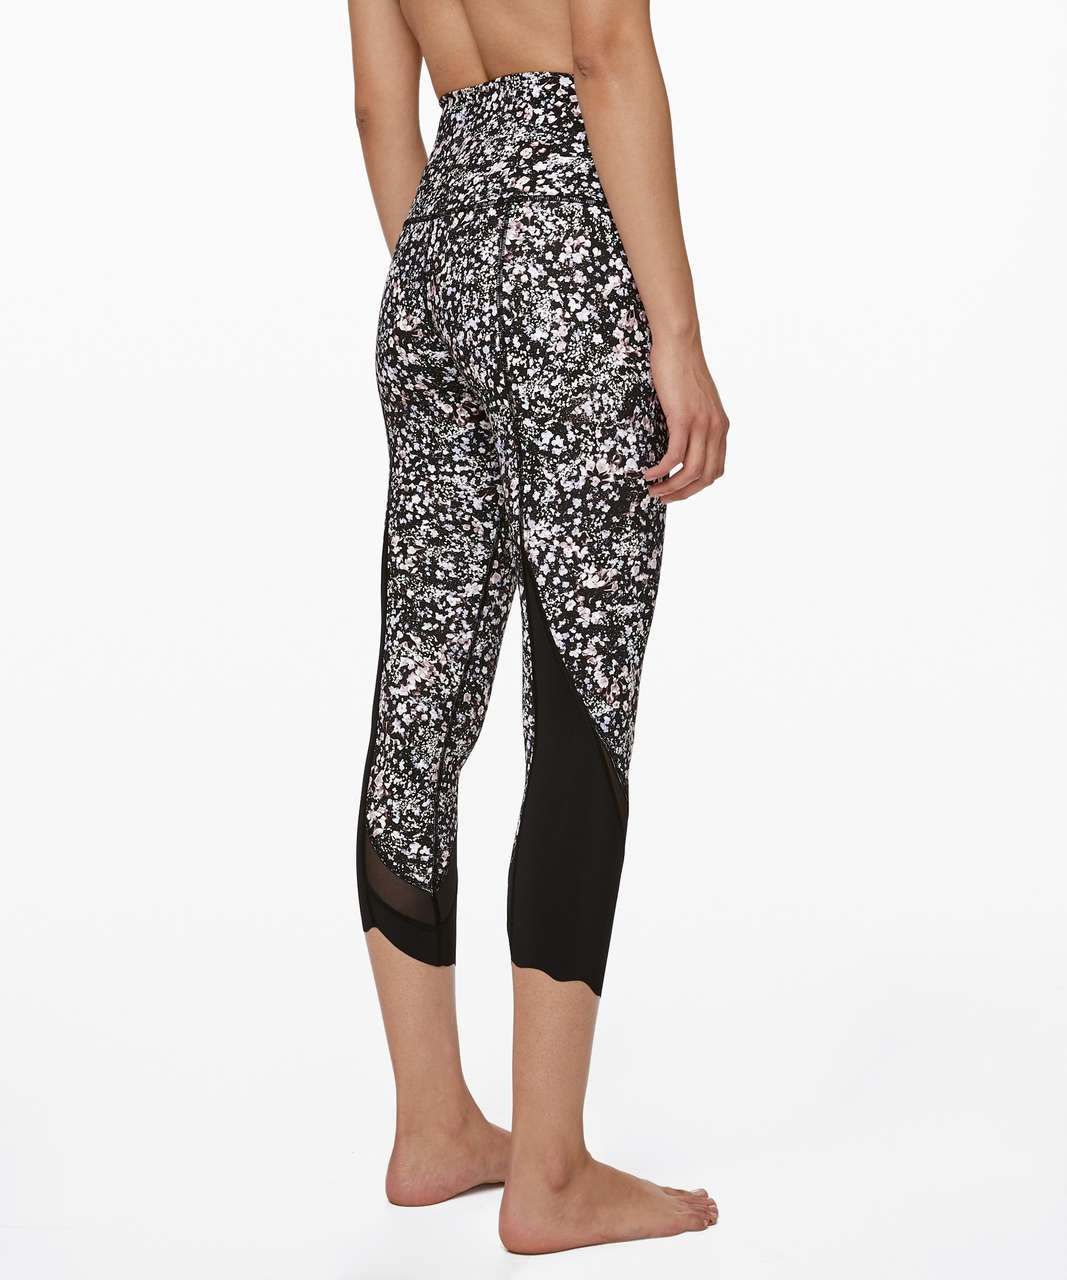 "Lululemon Wunder Under Crop II *Roll Down Scallop Luxtreme 24"" - Floral Spritz Multi / Black"